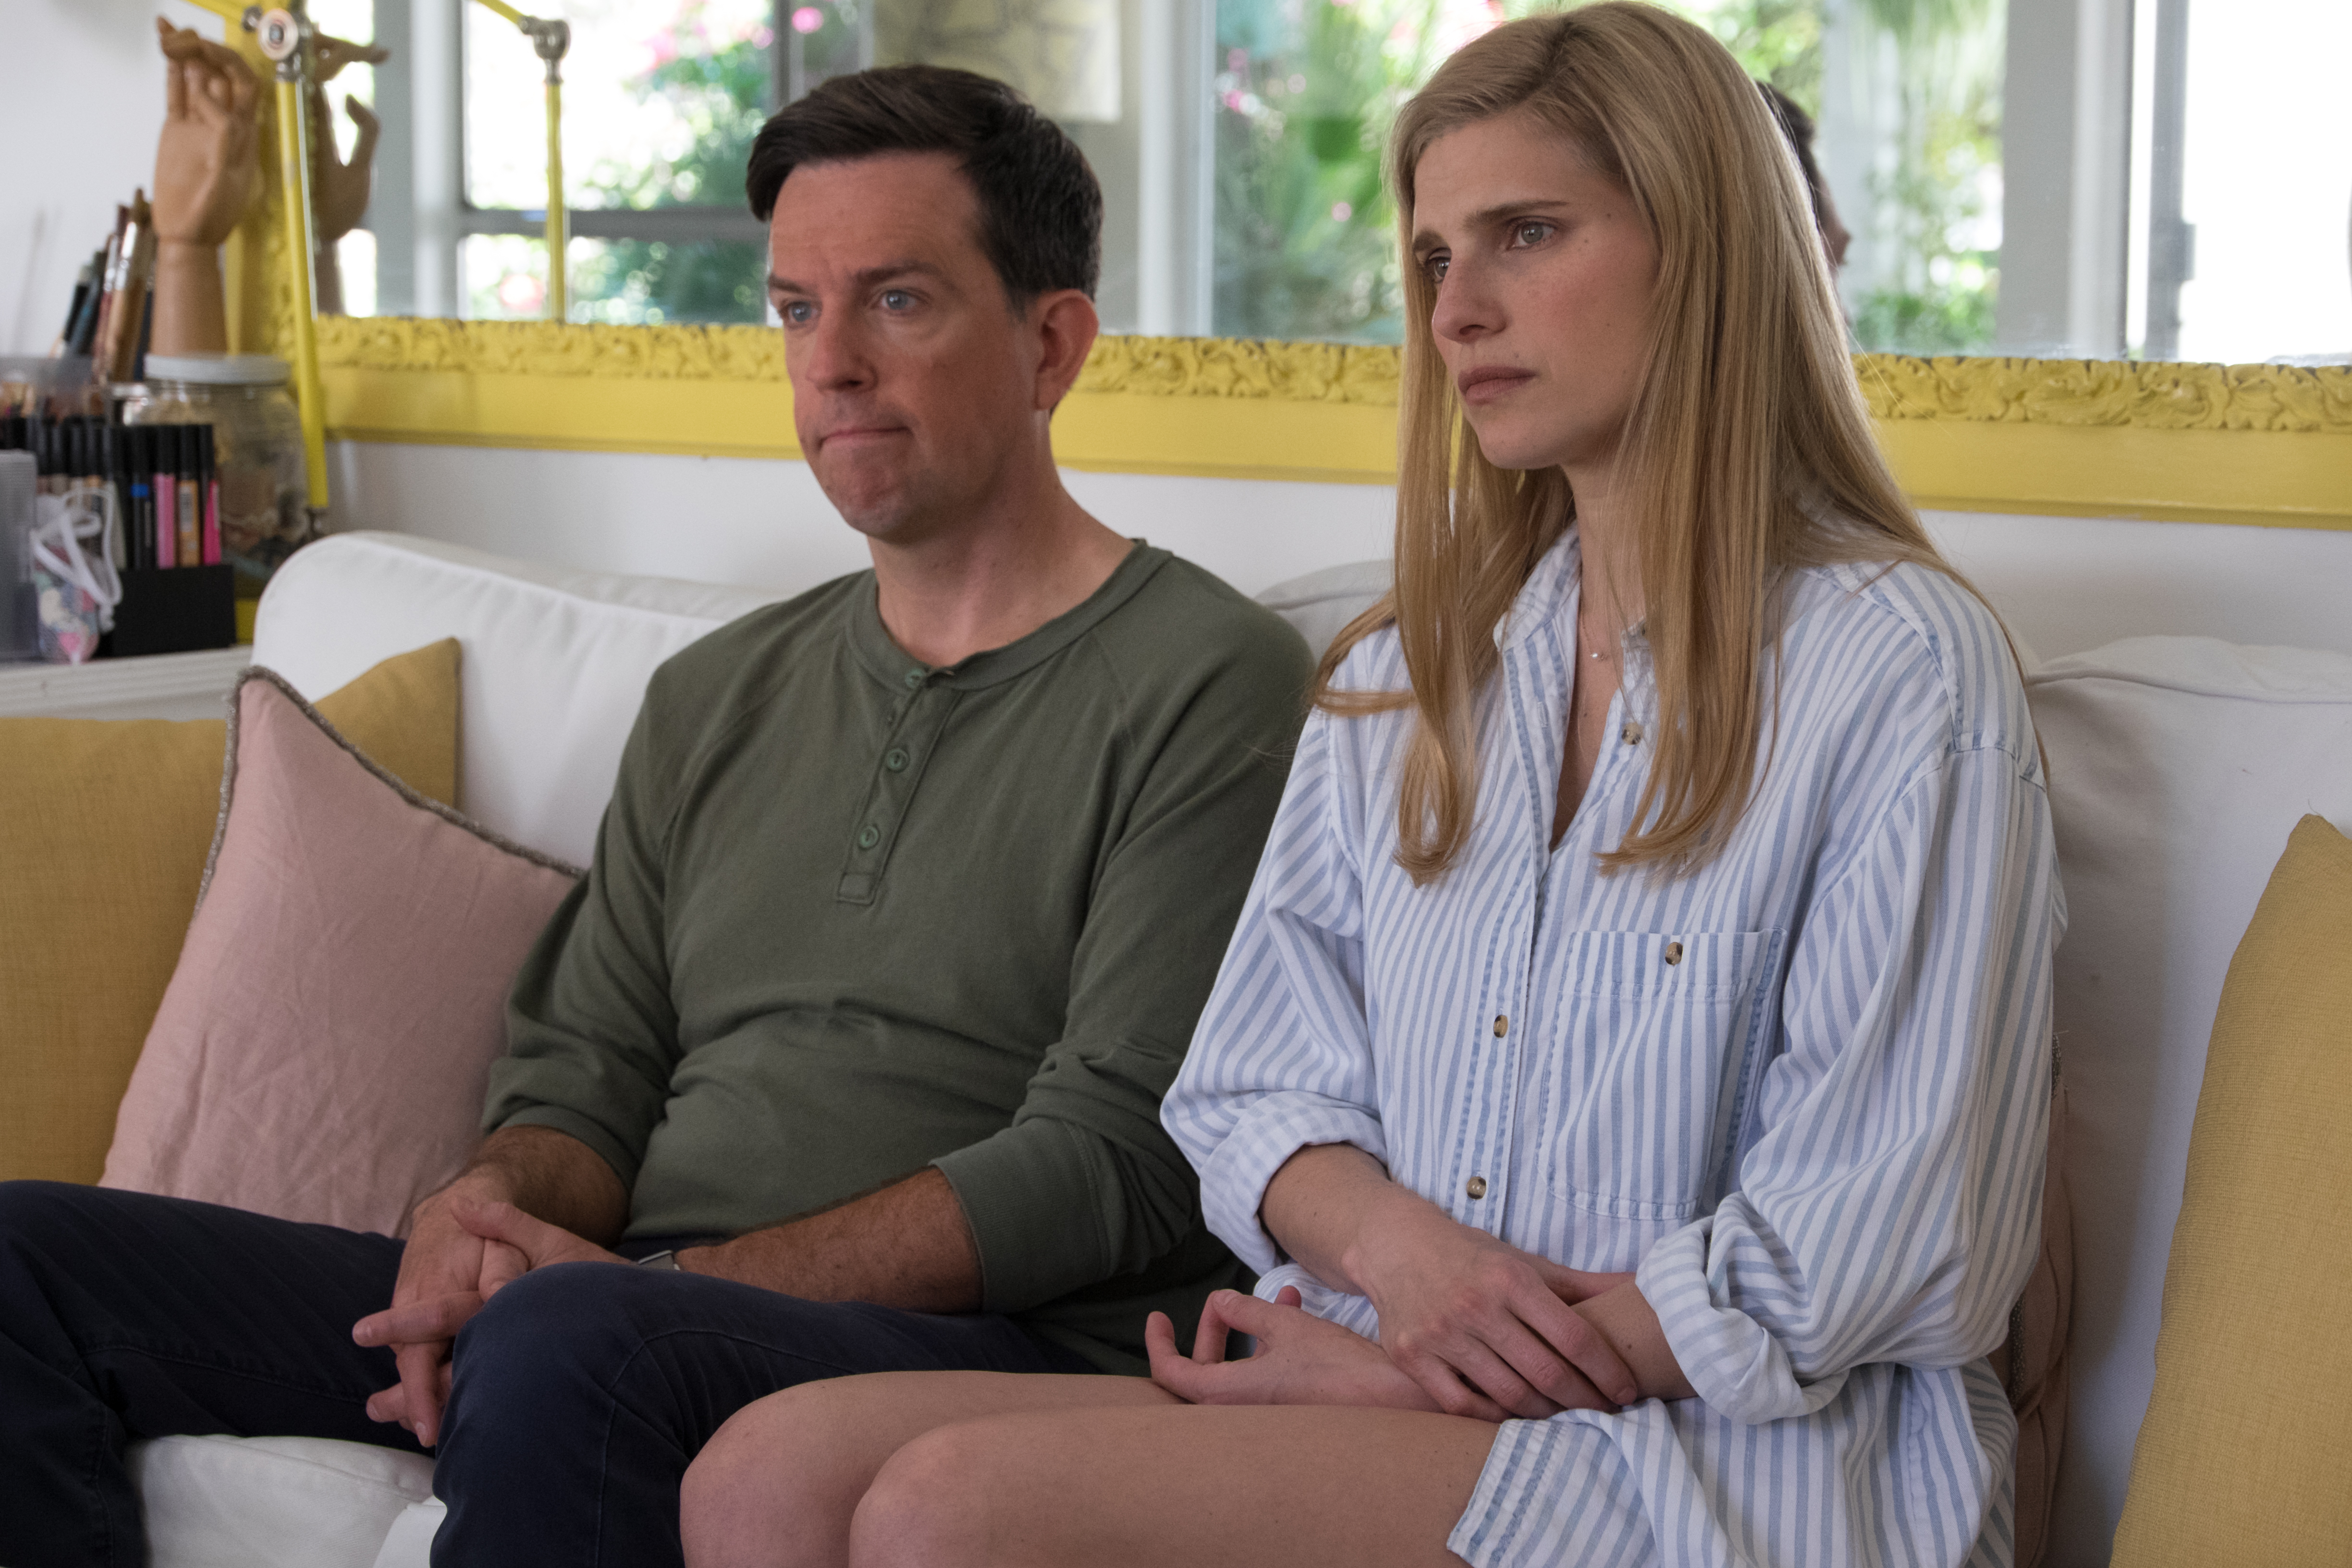 Ed Helms and Lake Bell sitting next to each other on the couch with disappointed looks in I DO...UNTIL I DON'T.